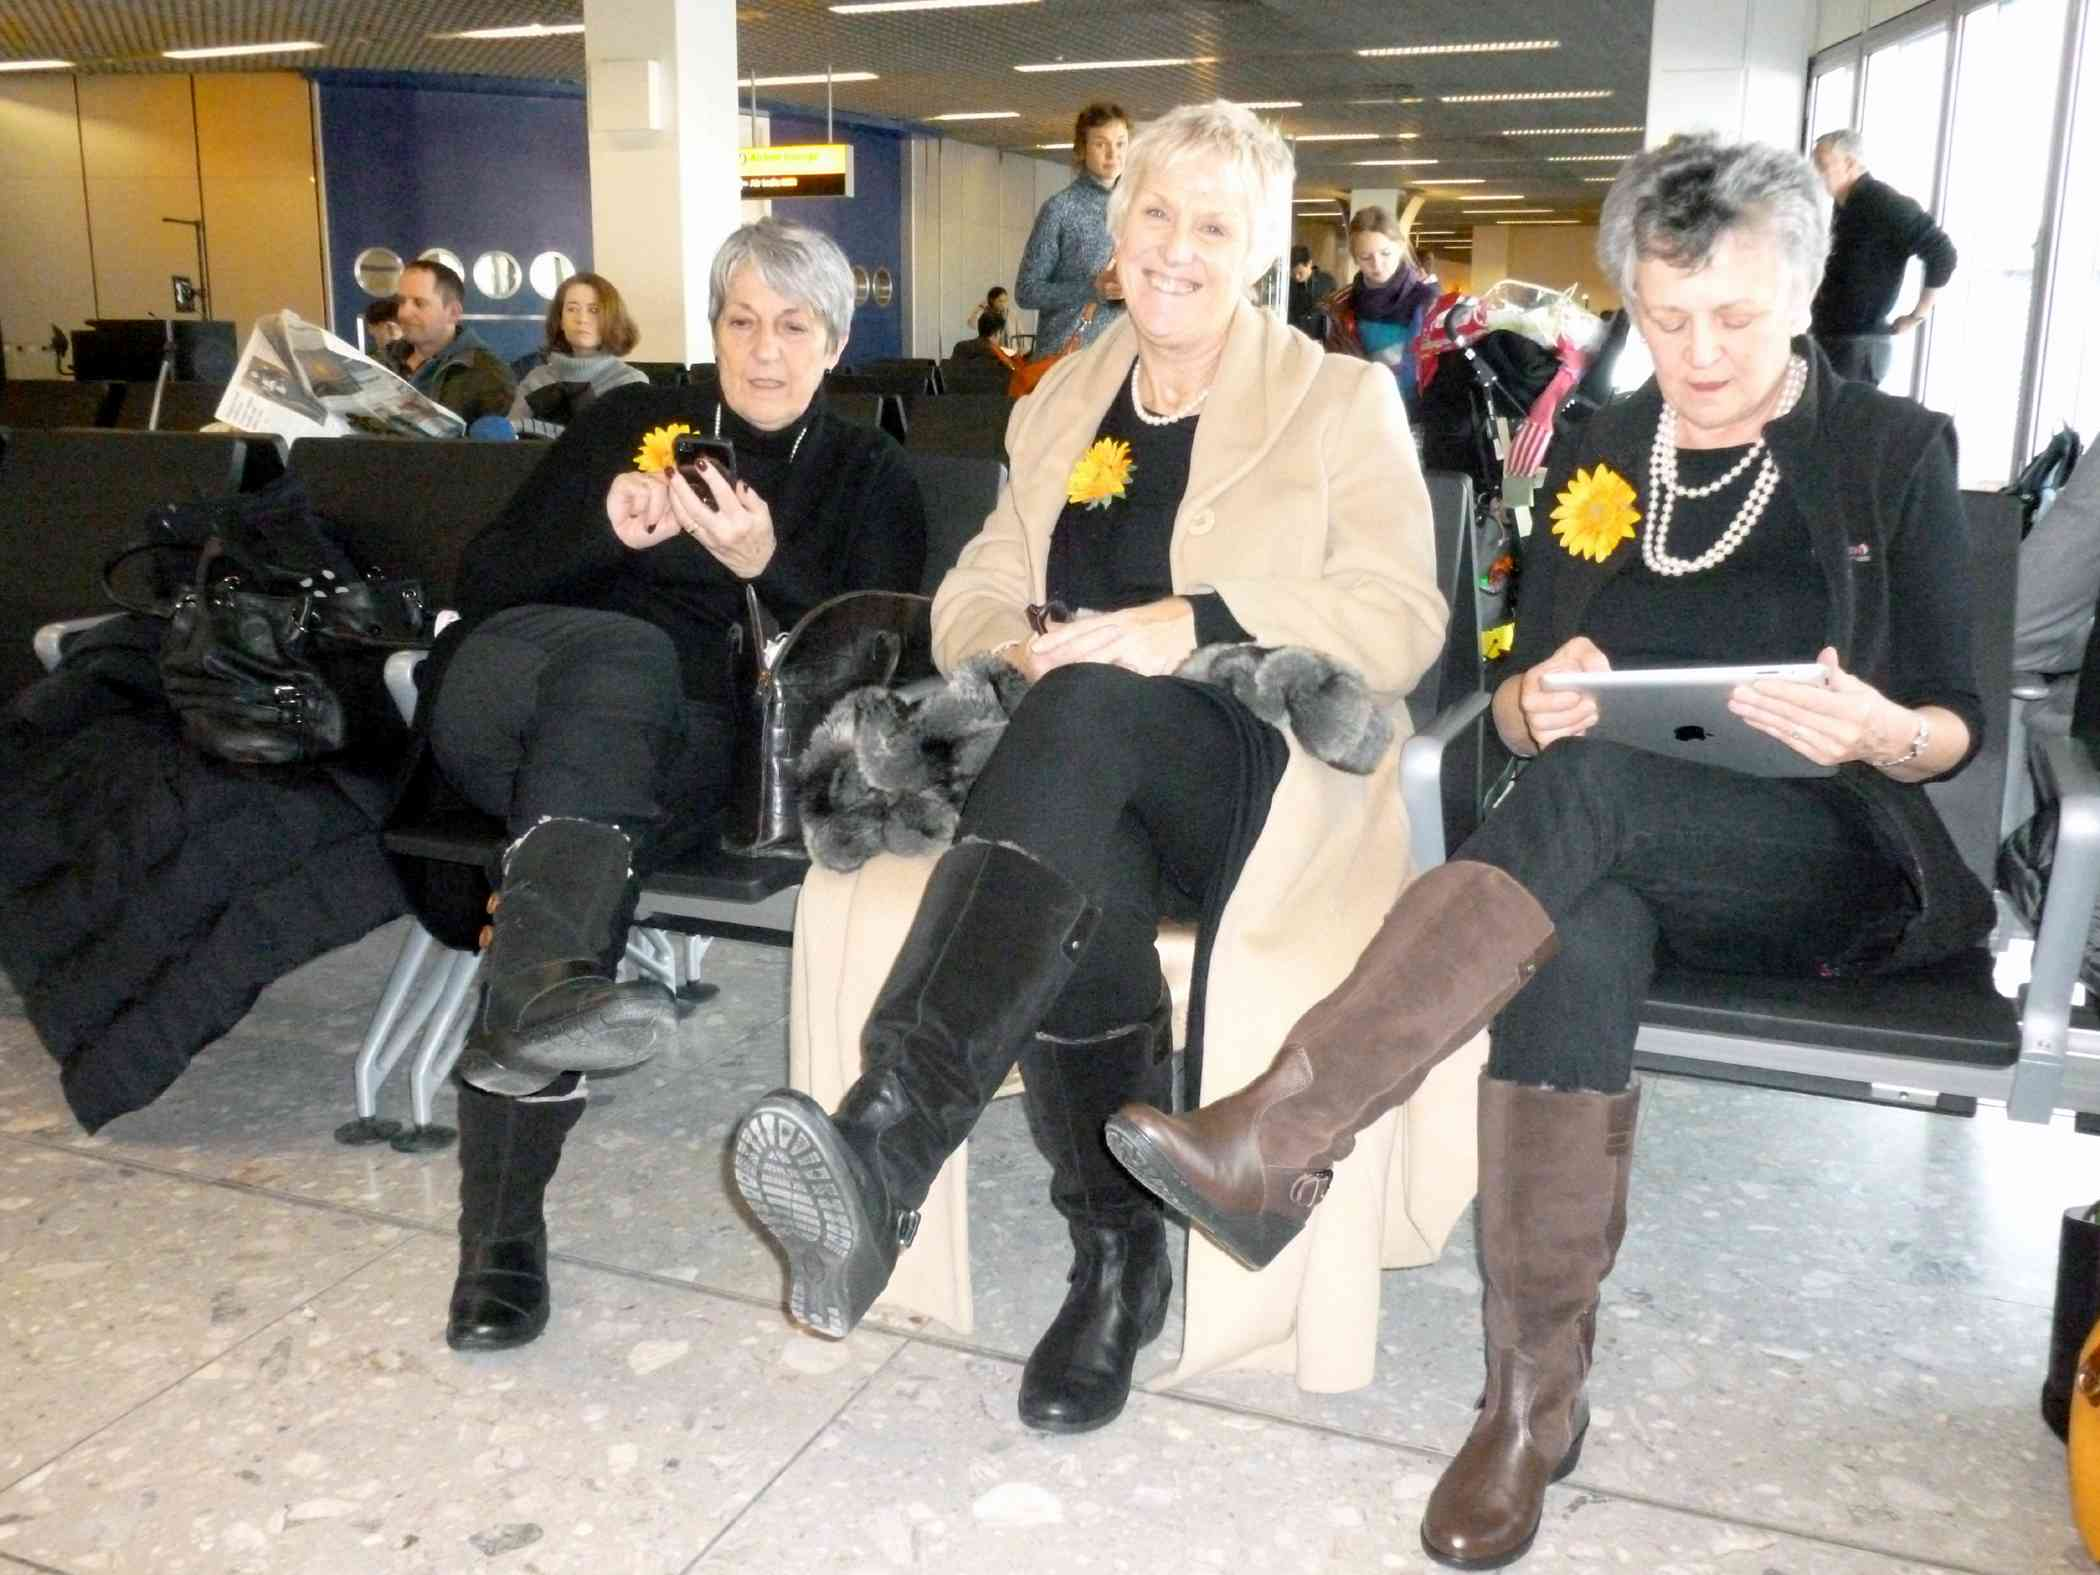 Stylish women's boots from Hotter - great for travel.